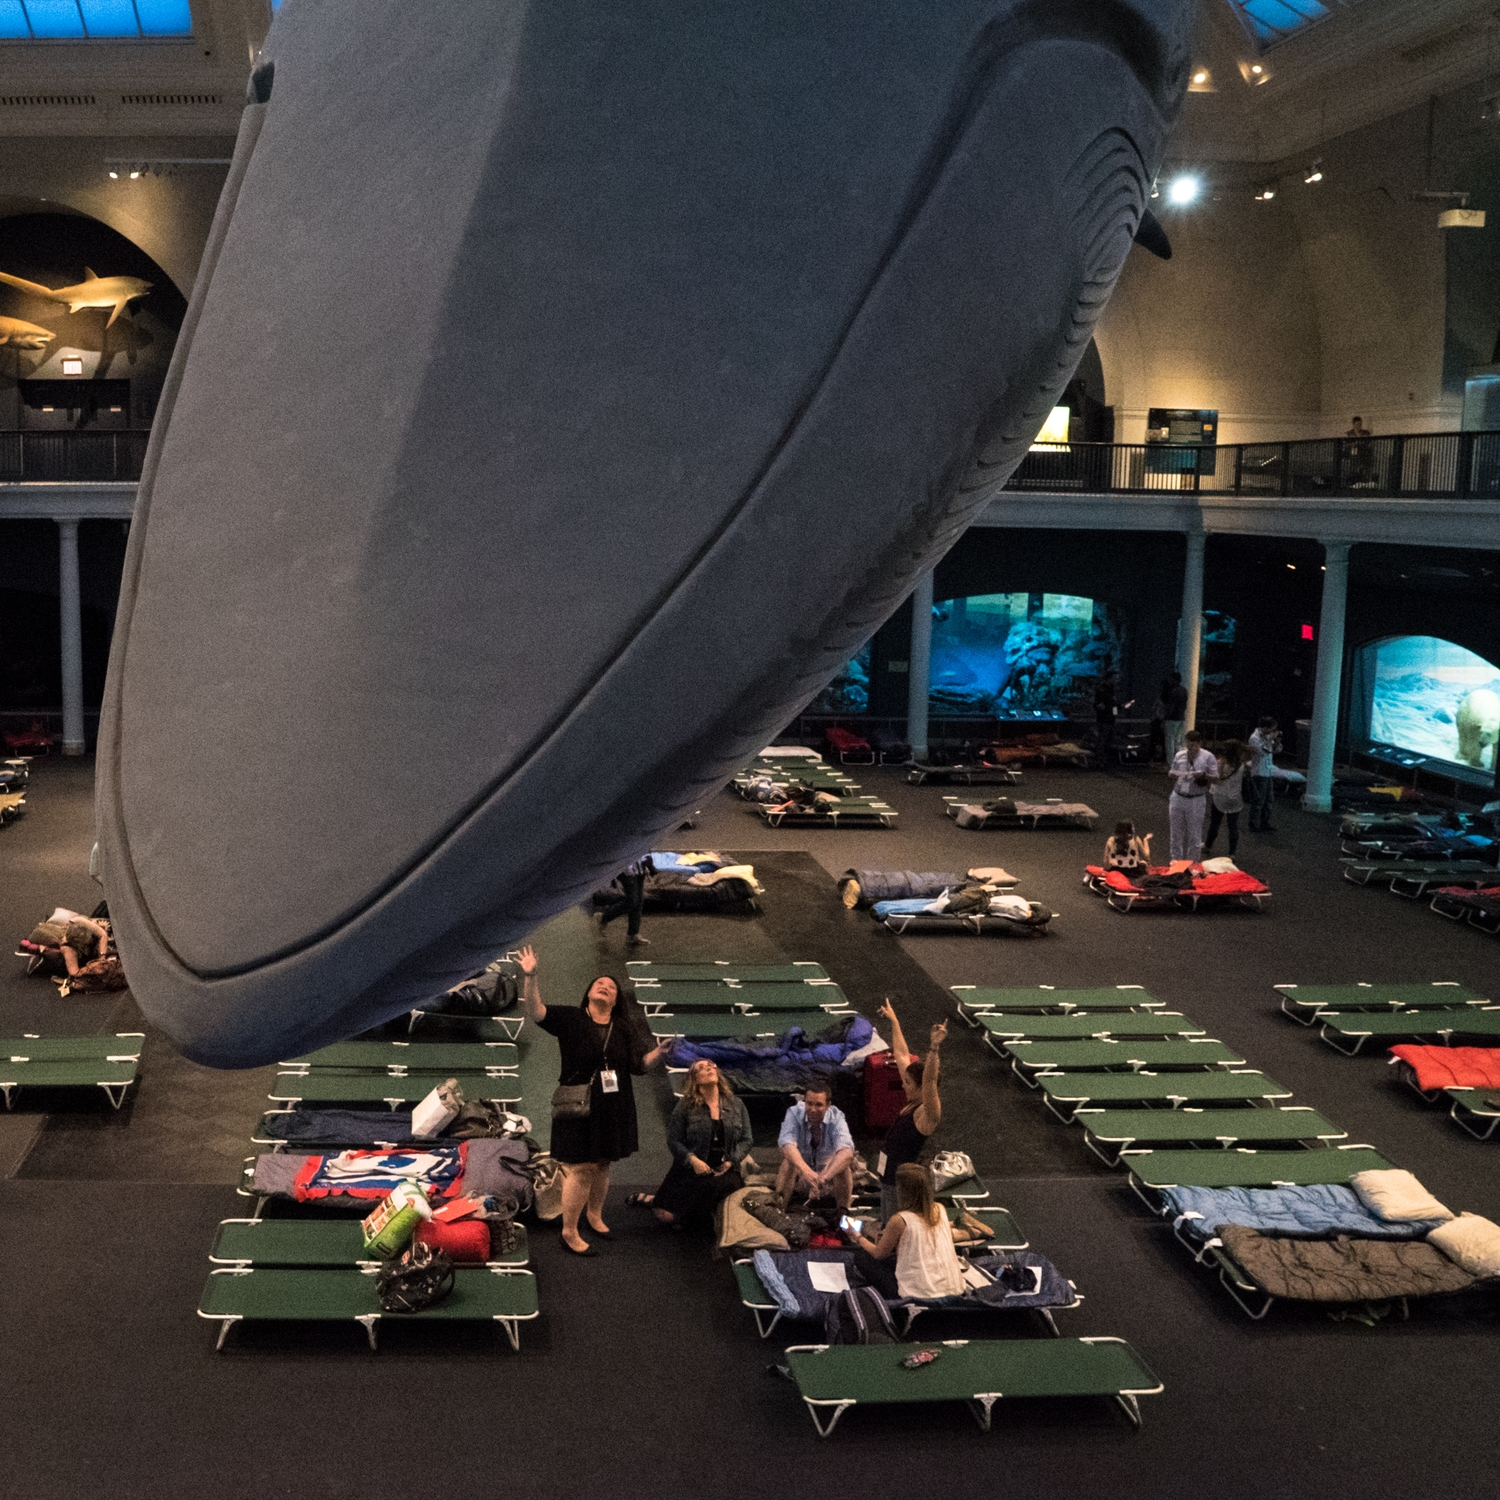 Museum of Natural History - Sleepover for Grownups -  Under the Whale